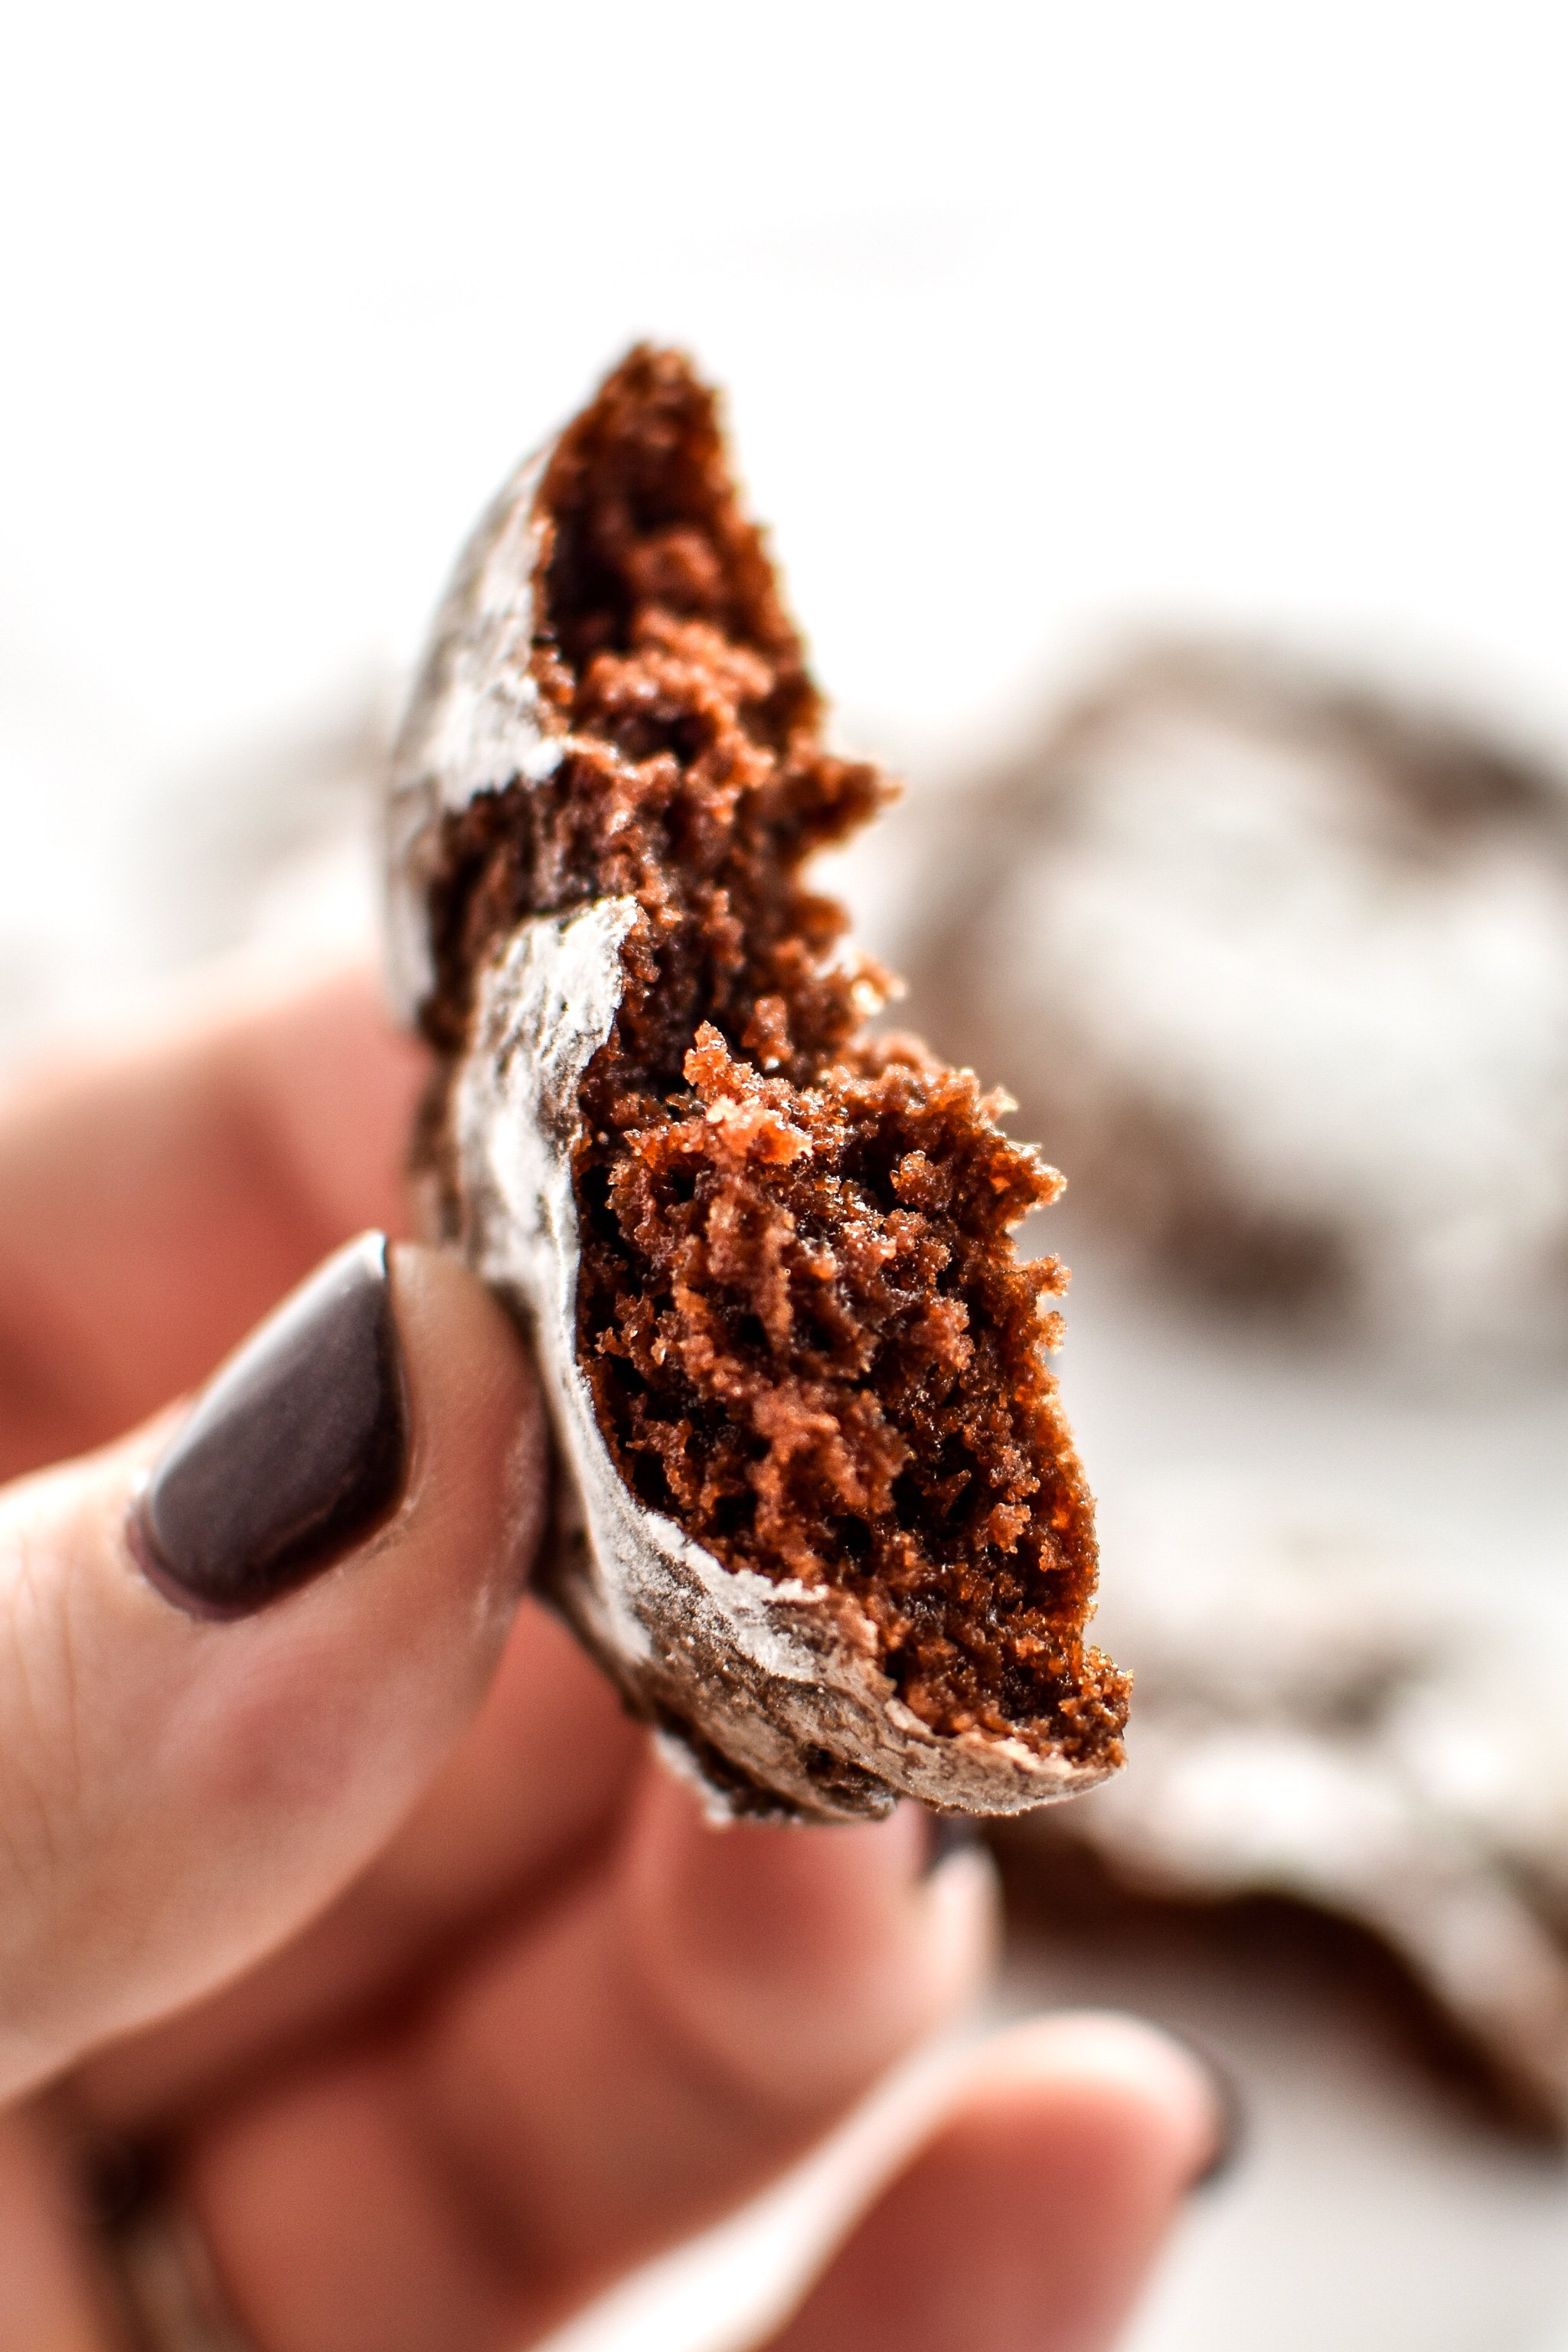 Holding a classic chewy chocolate crinkle cookie.